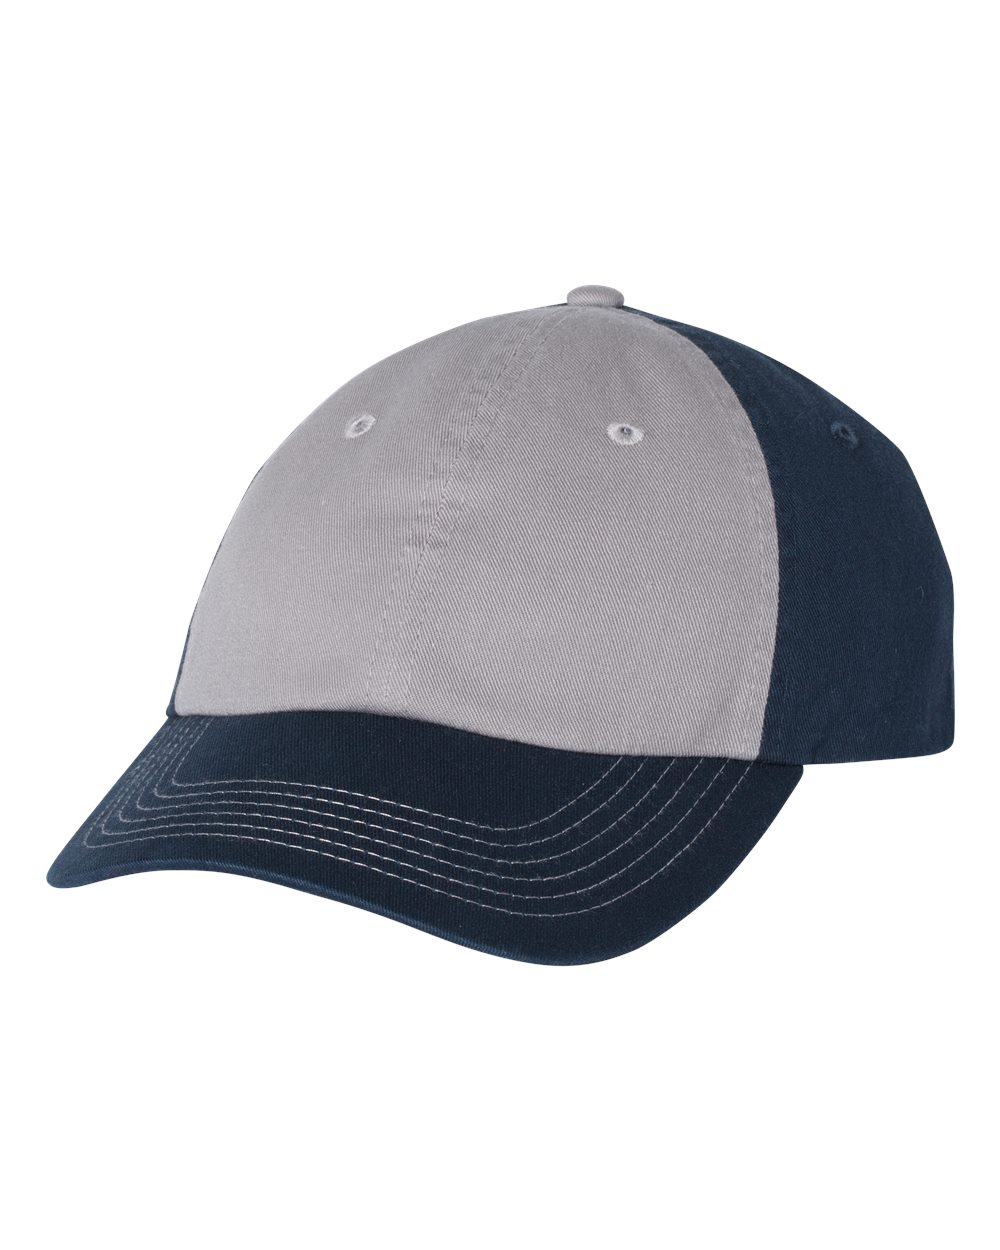 click to view Grey/ Navy